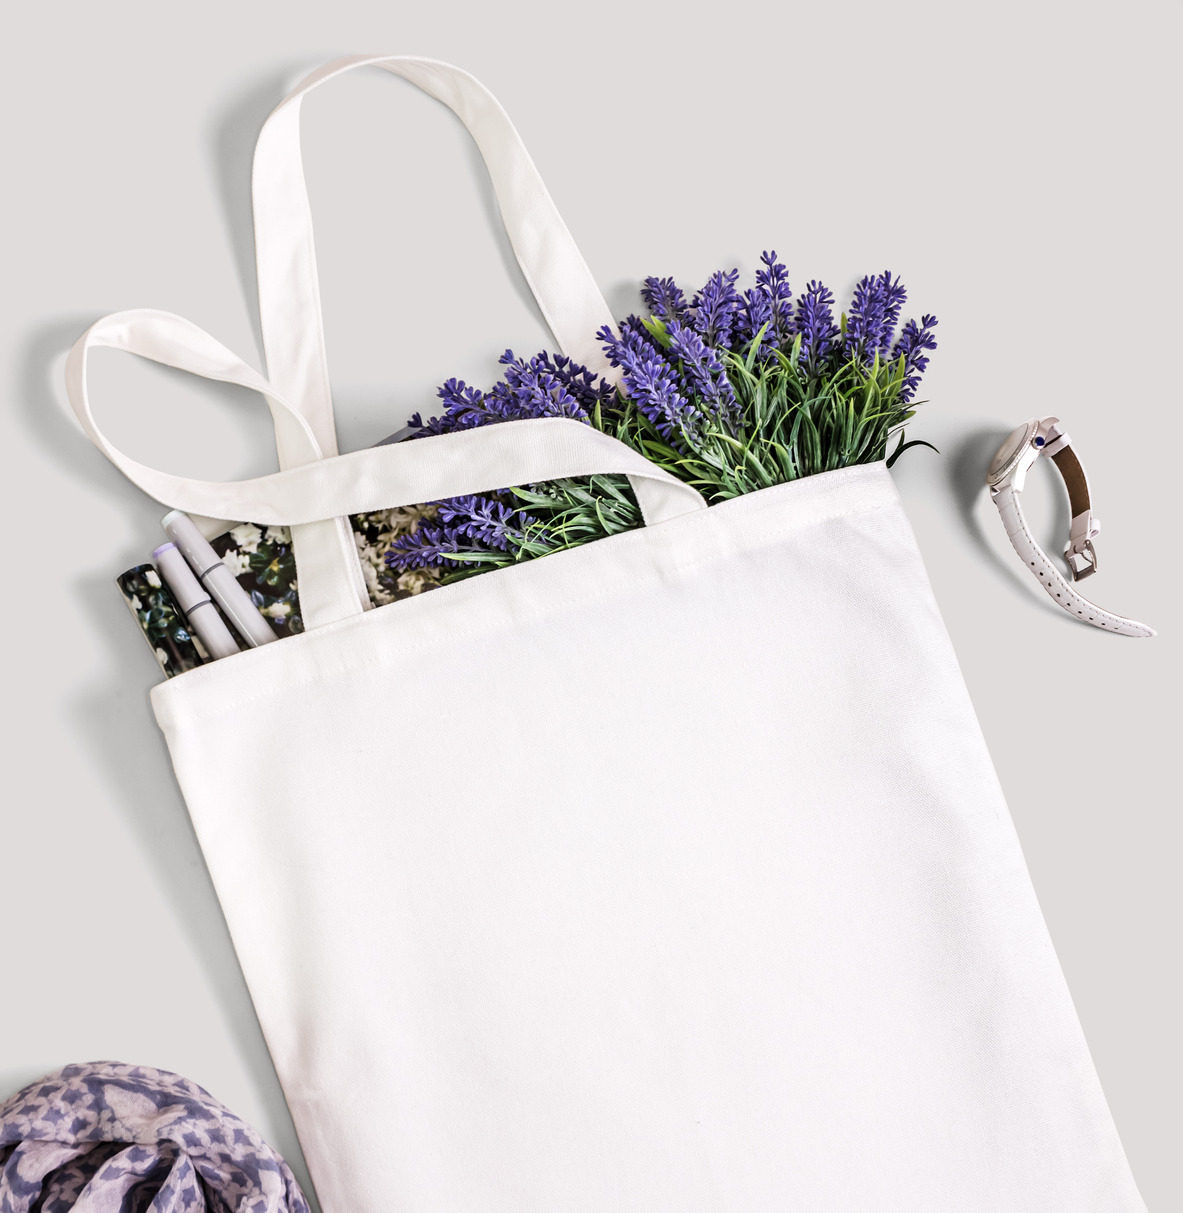 , What Can You Use a String Bag For?, Saubio Making Wealth